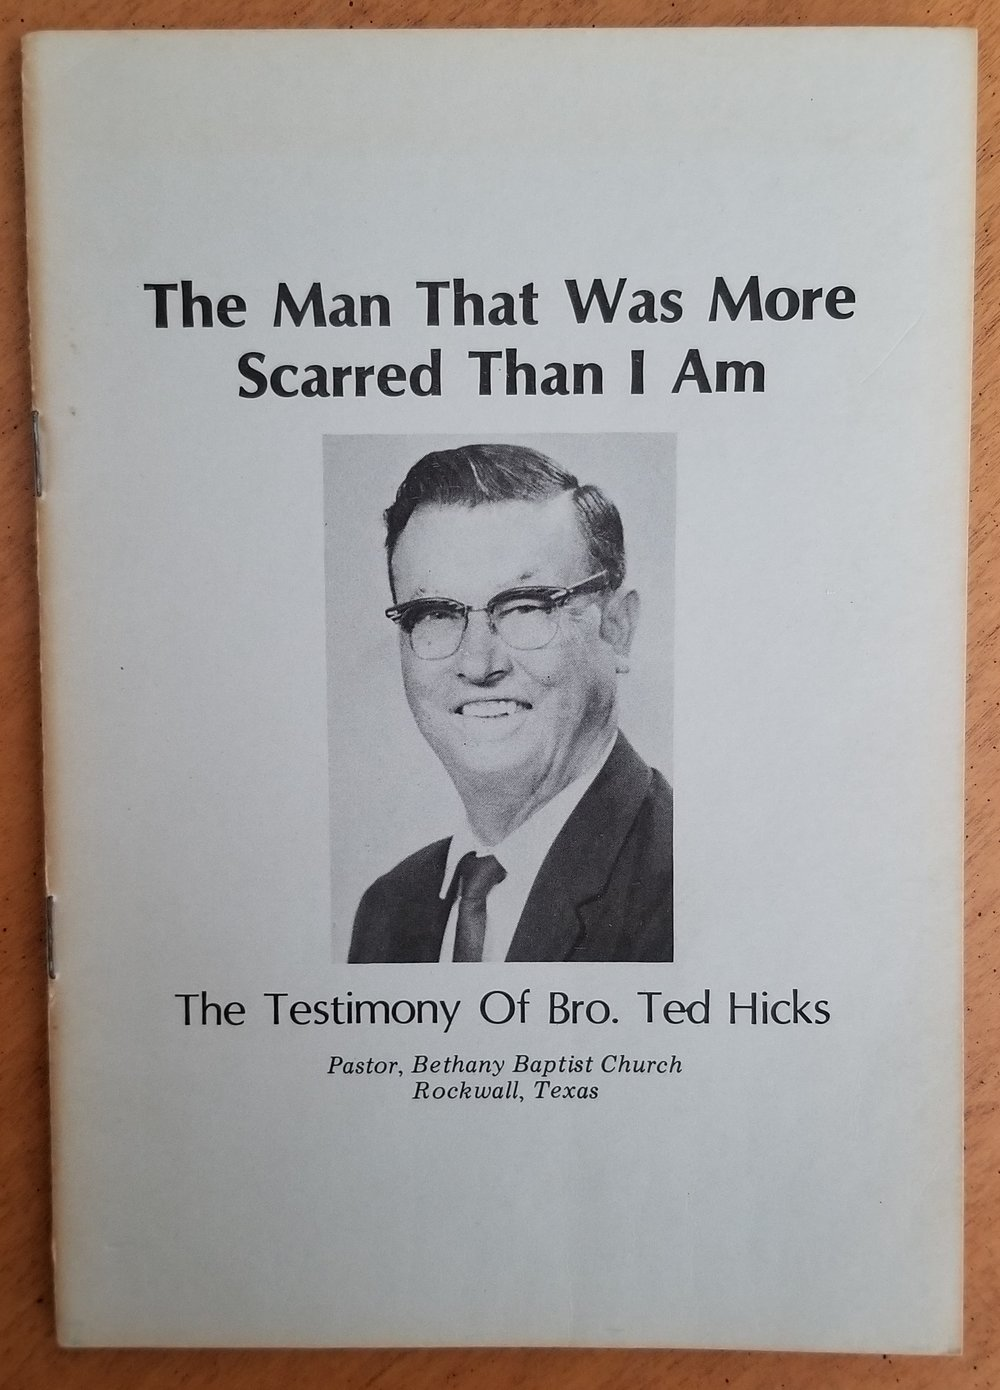 the self-published paperback by Dr. Ted Hicks